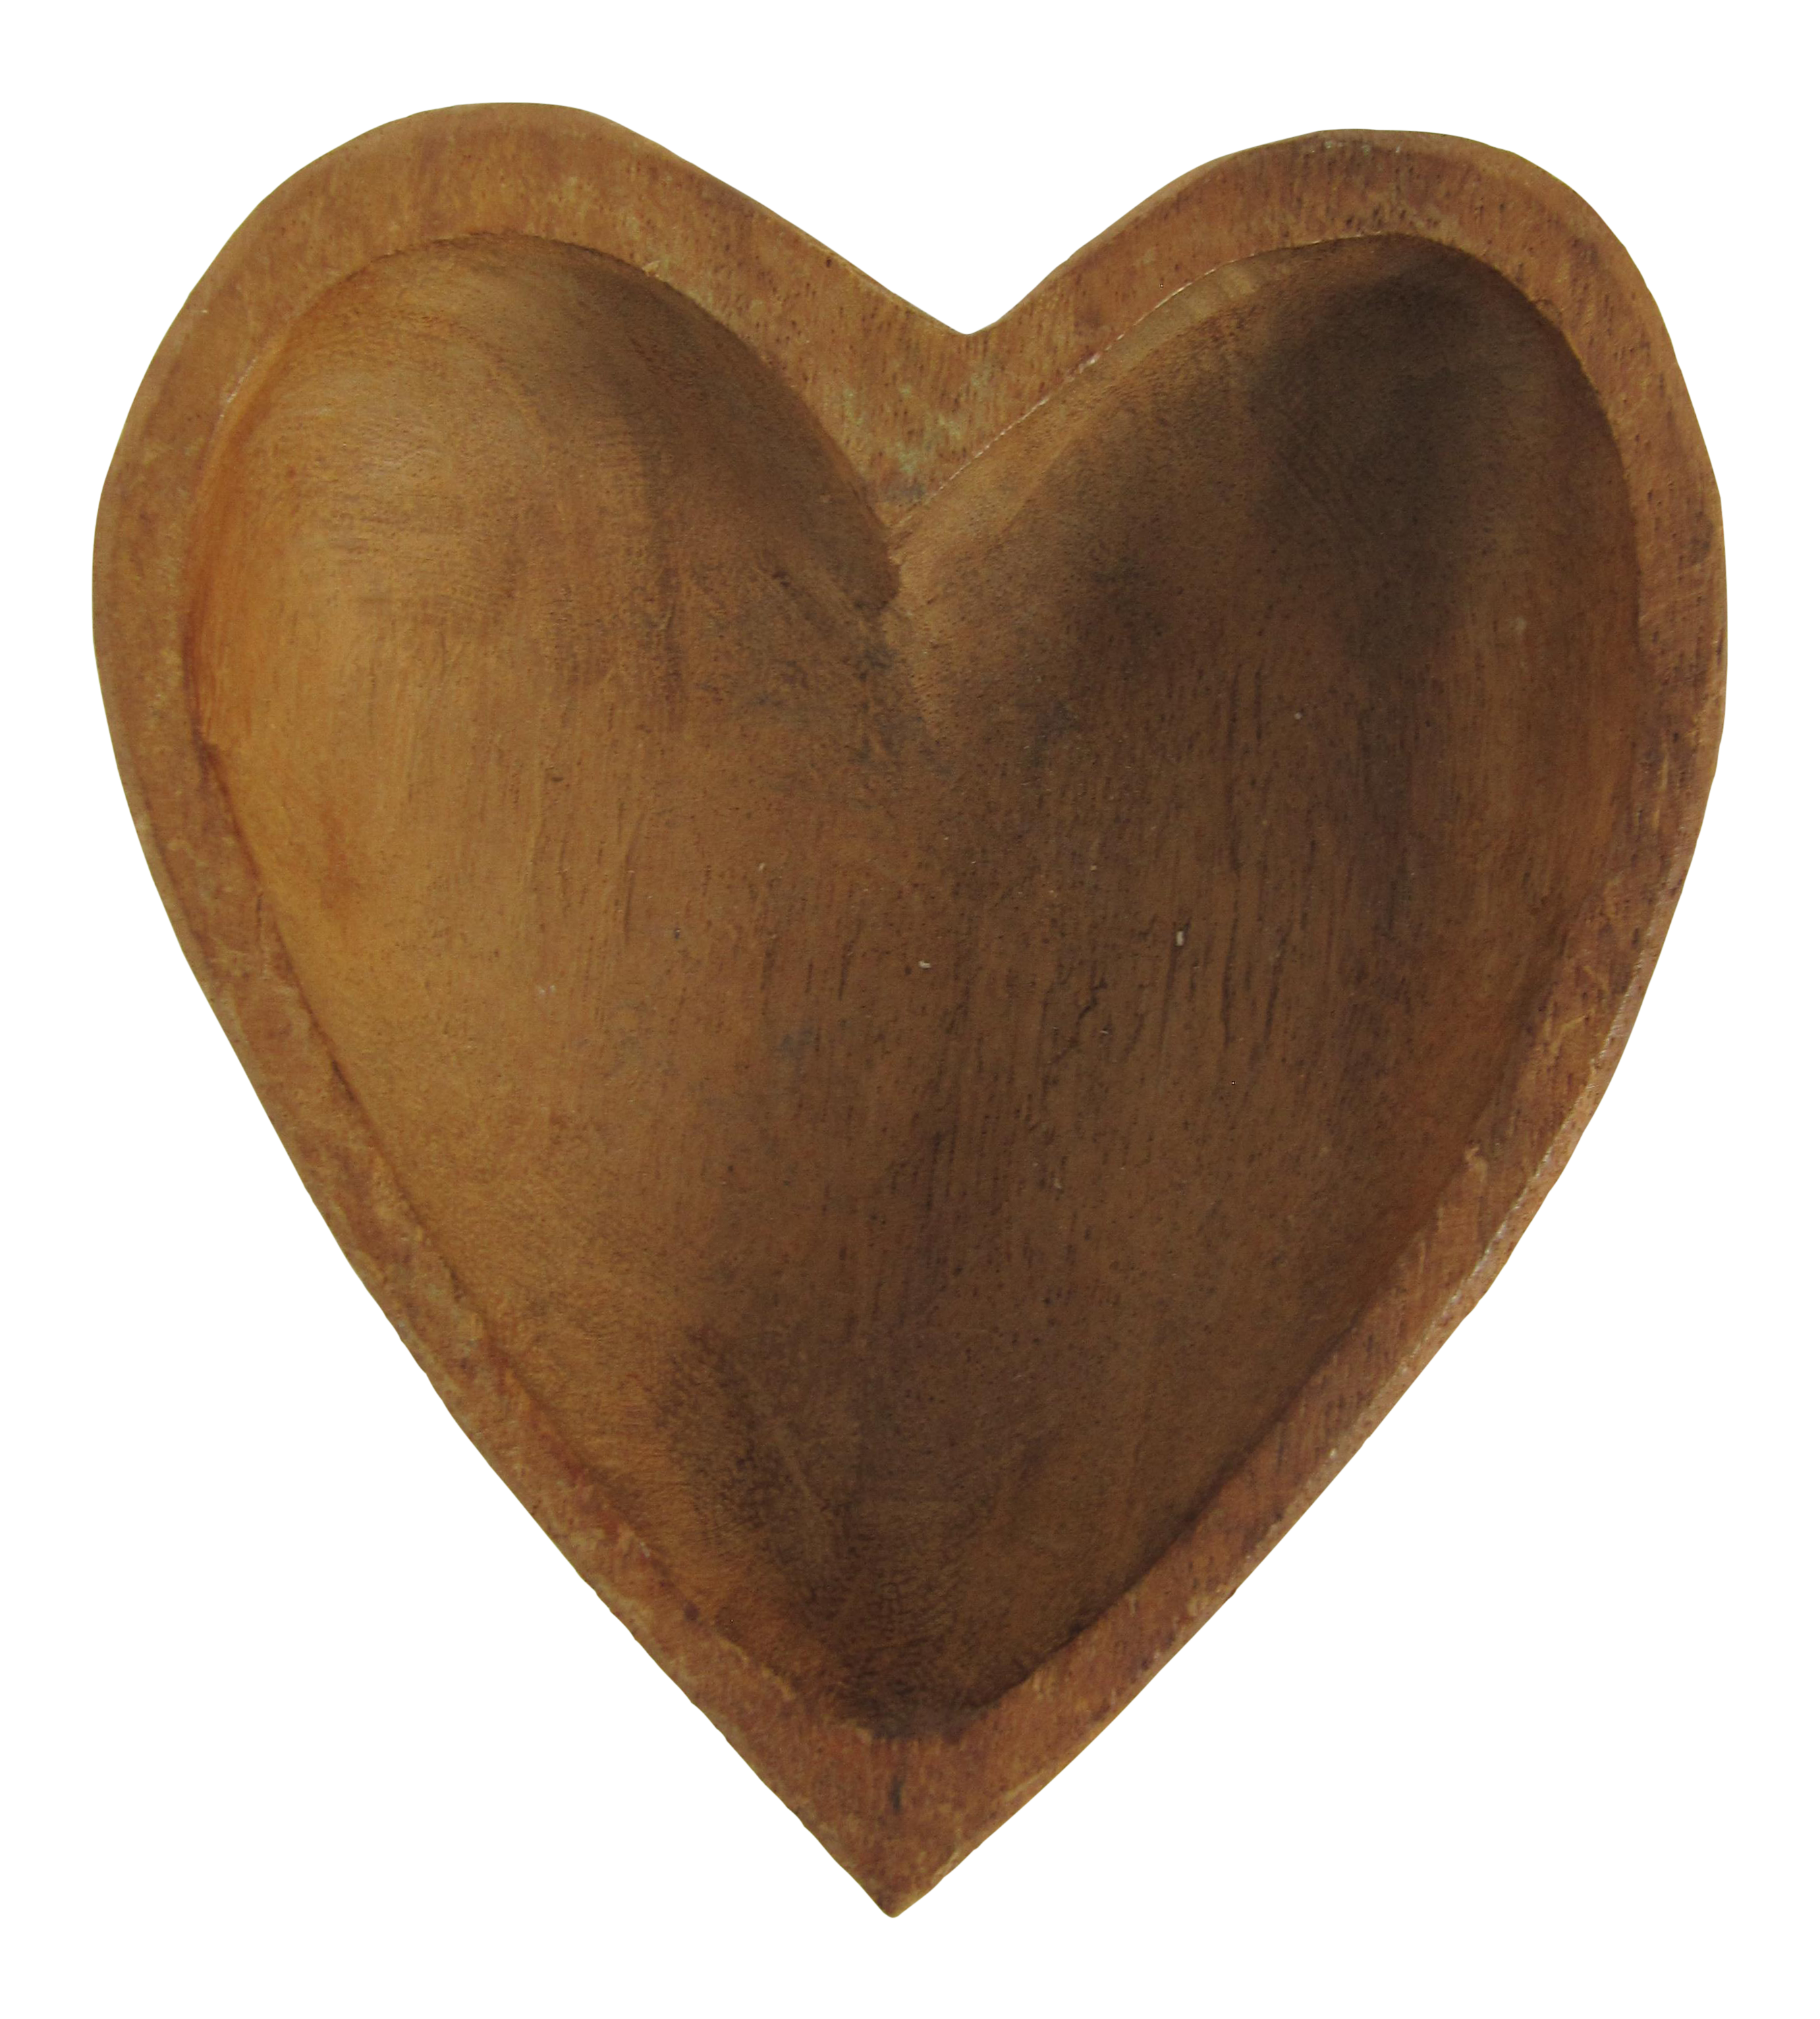 Wood heart png. Hand carved shaped bowl